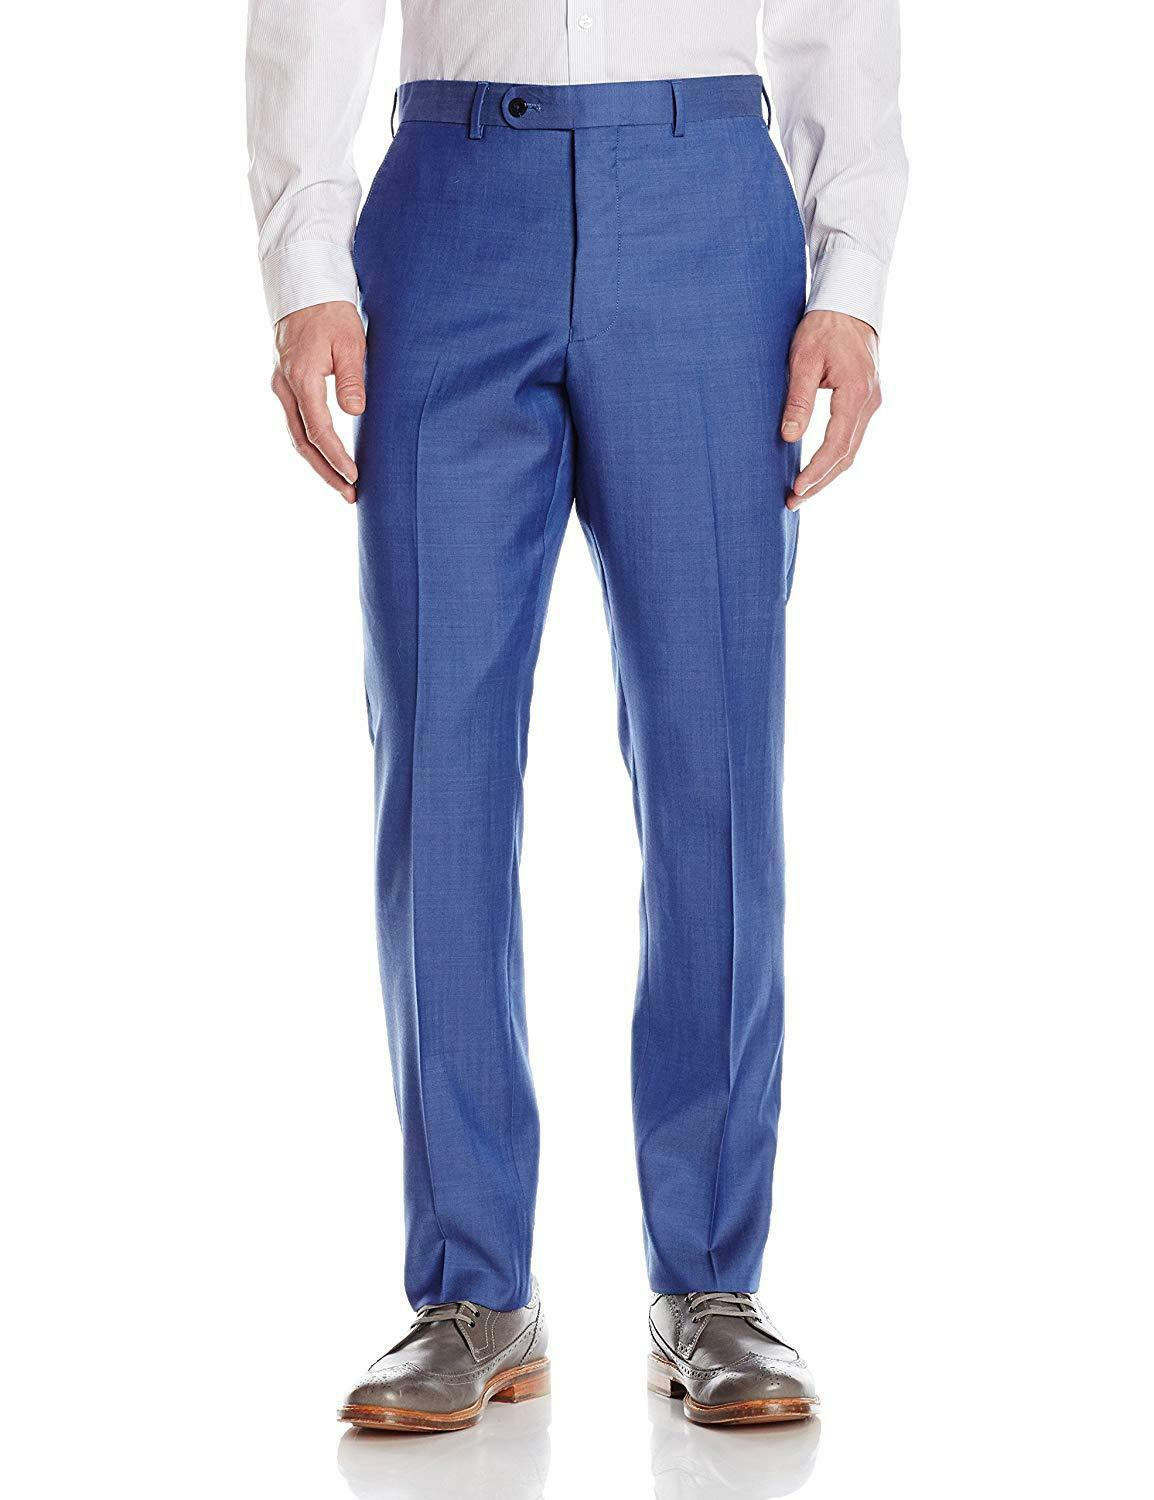 VINCE CAMUTO Men's blueE SOLID SLIM FIT TROUSERS FLAT FRONT DRESS PANTS 31W